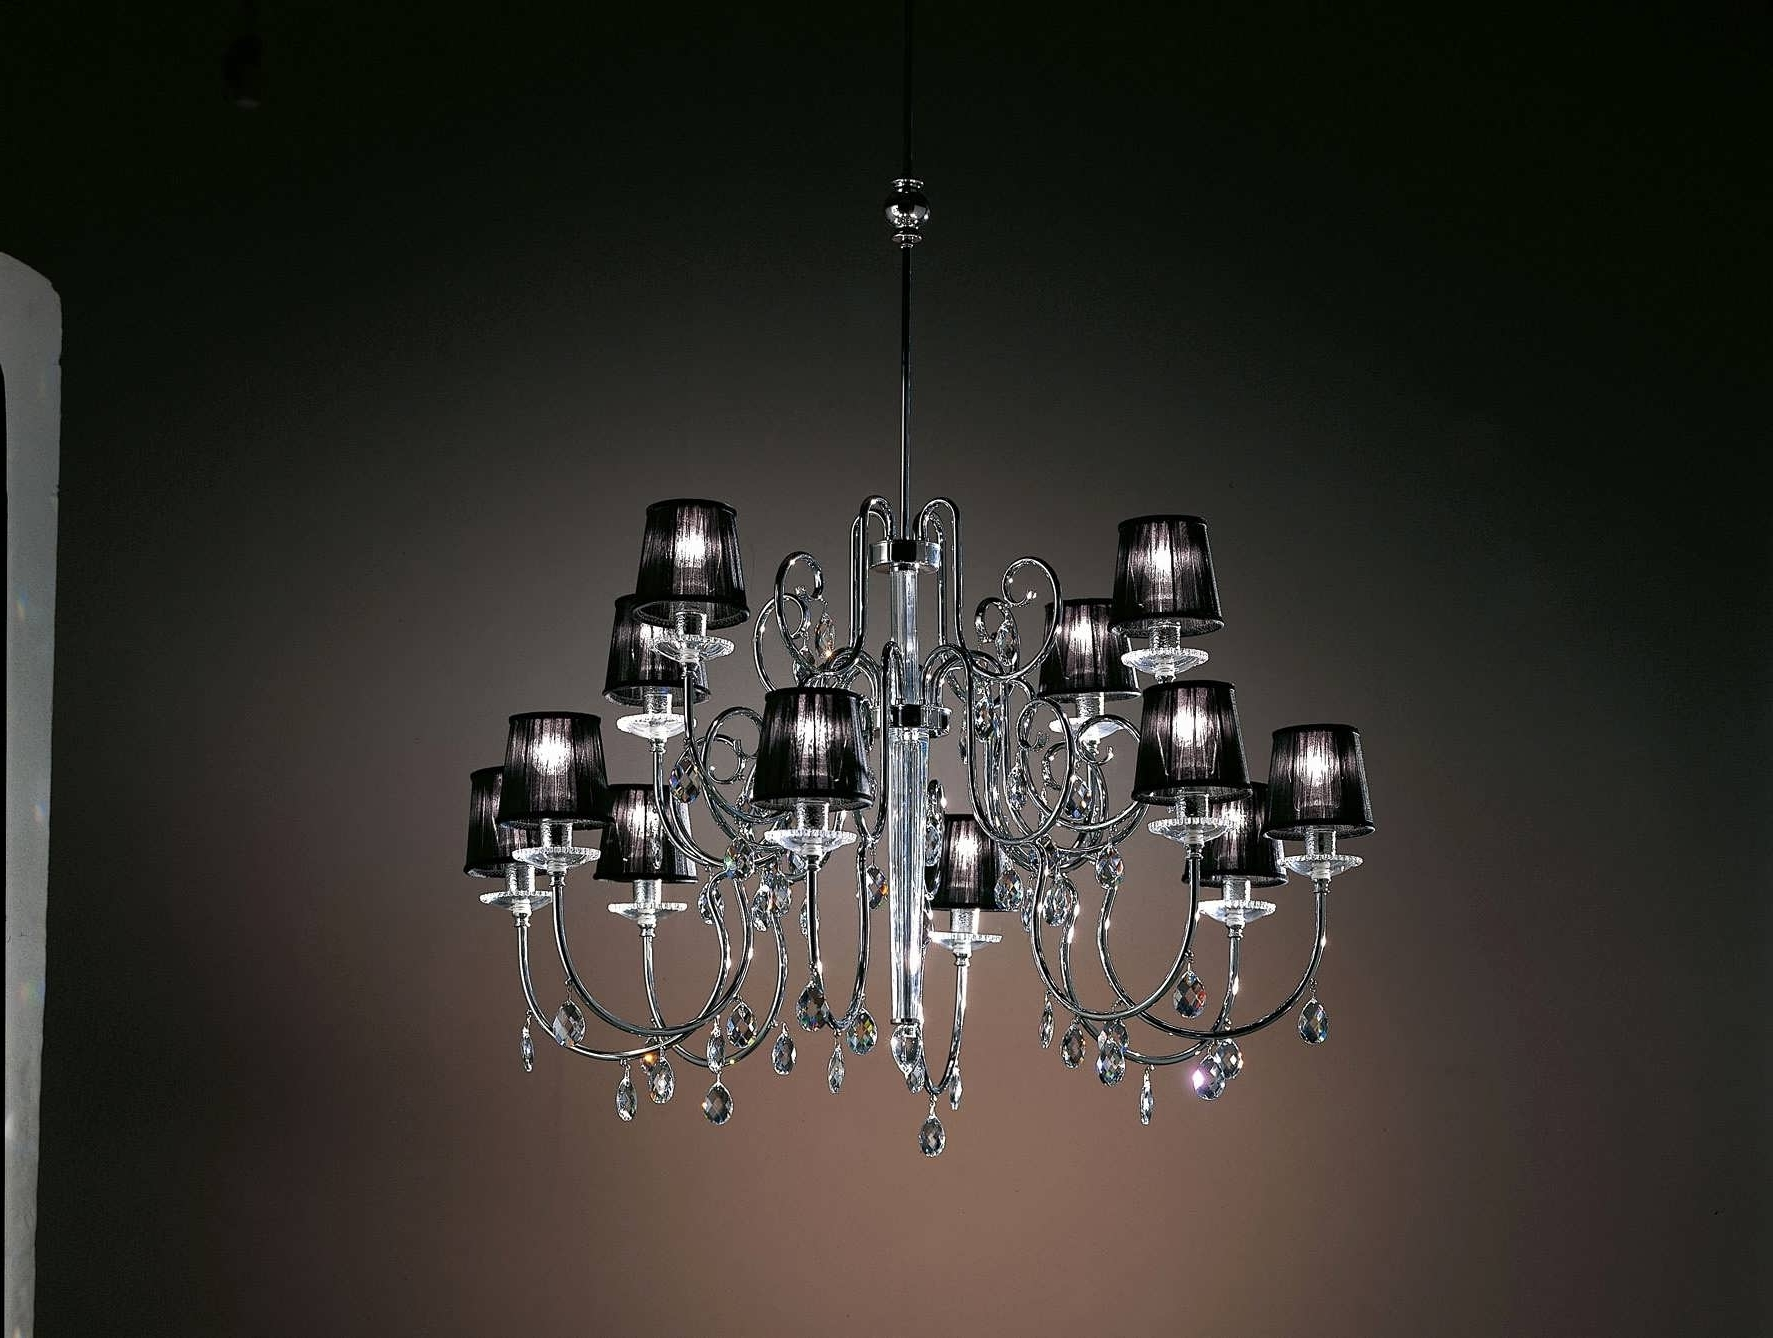 2017 Light : Modern Chandelier Lighting Small Black Keywordrelevance With Regard To Large Chandeliers Modern (View 14 of 15)